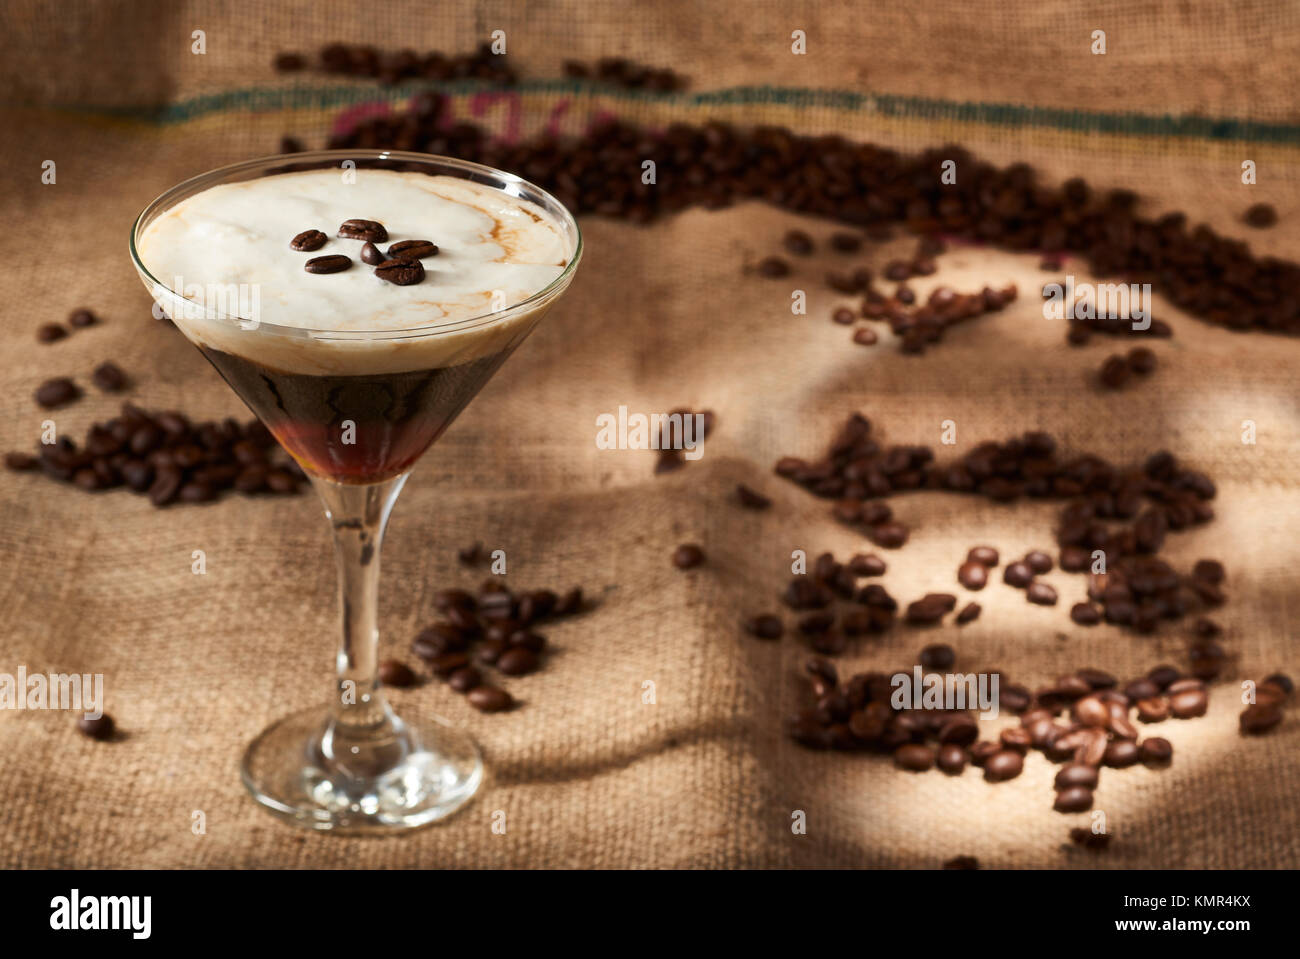 Cup of Espresso Martini - Stock Image